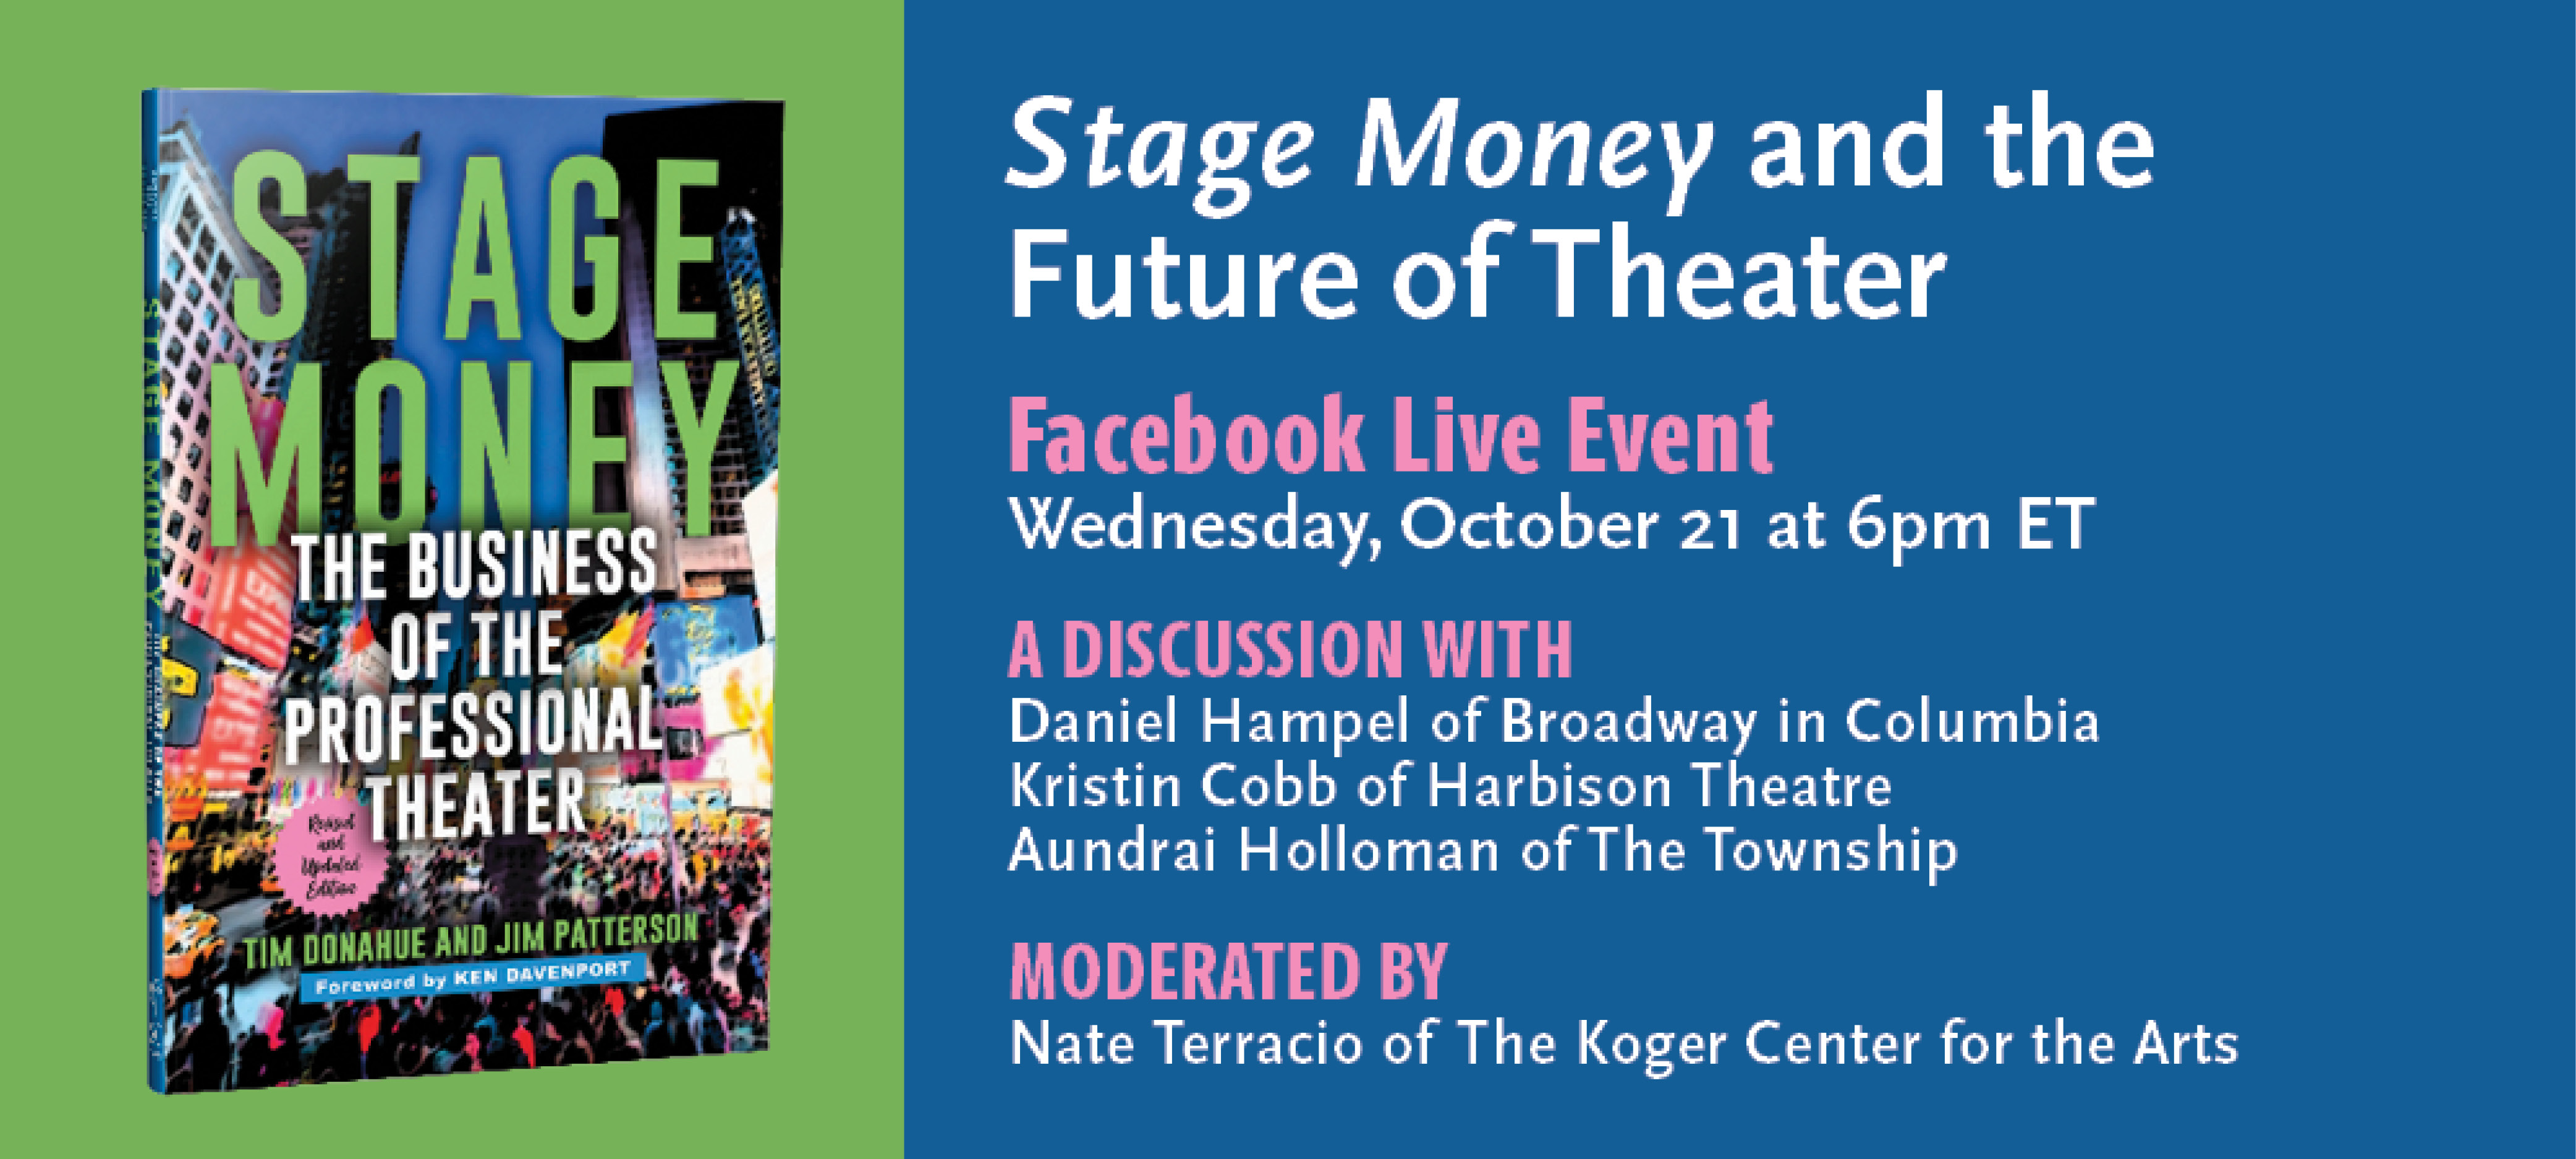 Stage Money and the Future of Theater - A Facebook Live Event